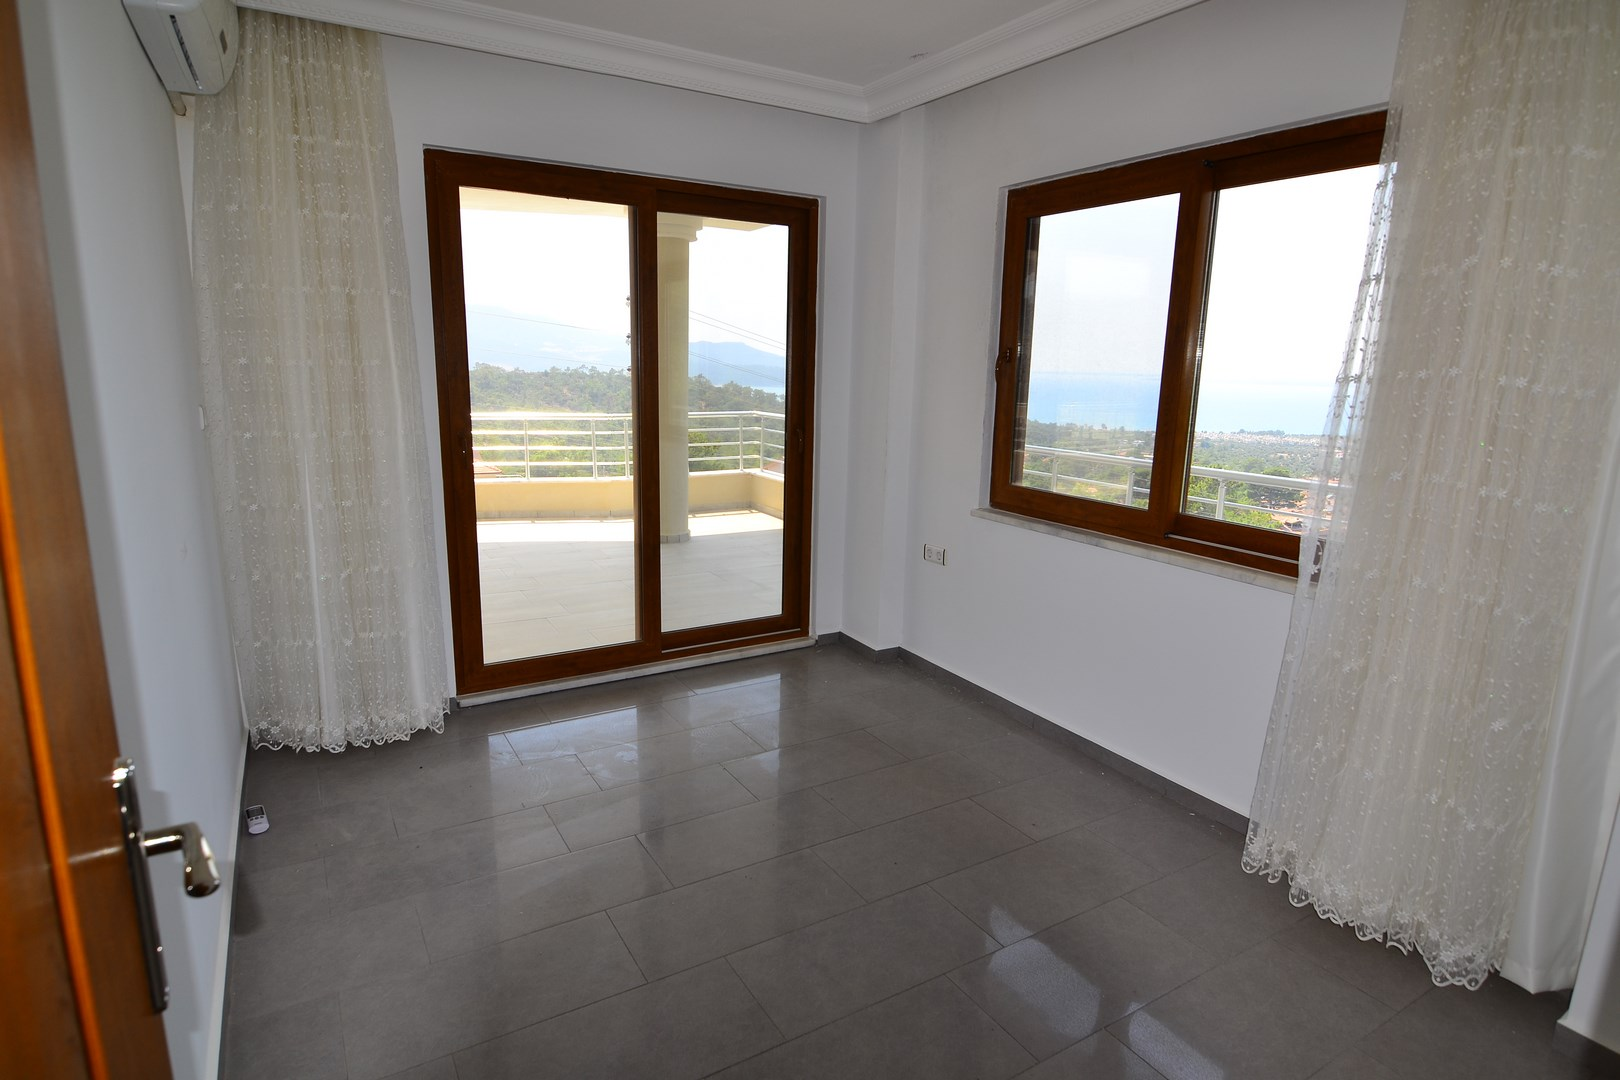 Detached Villa with private pool for sale in Akbuk